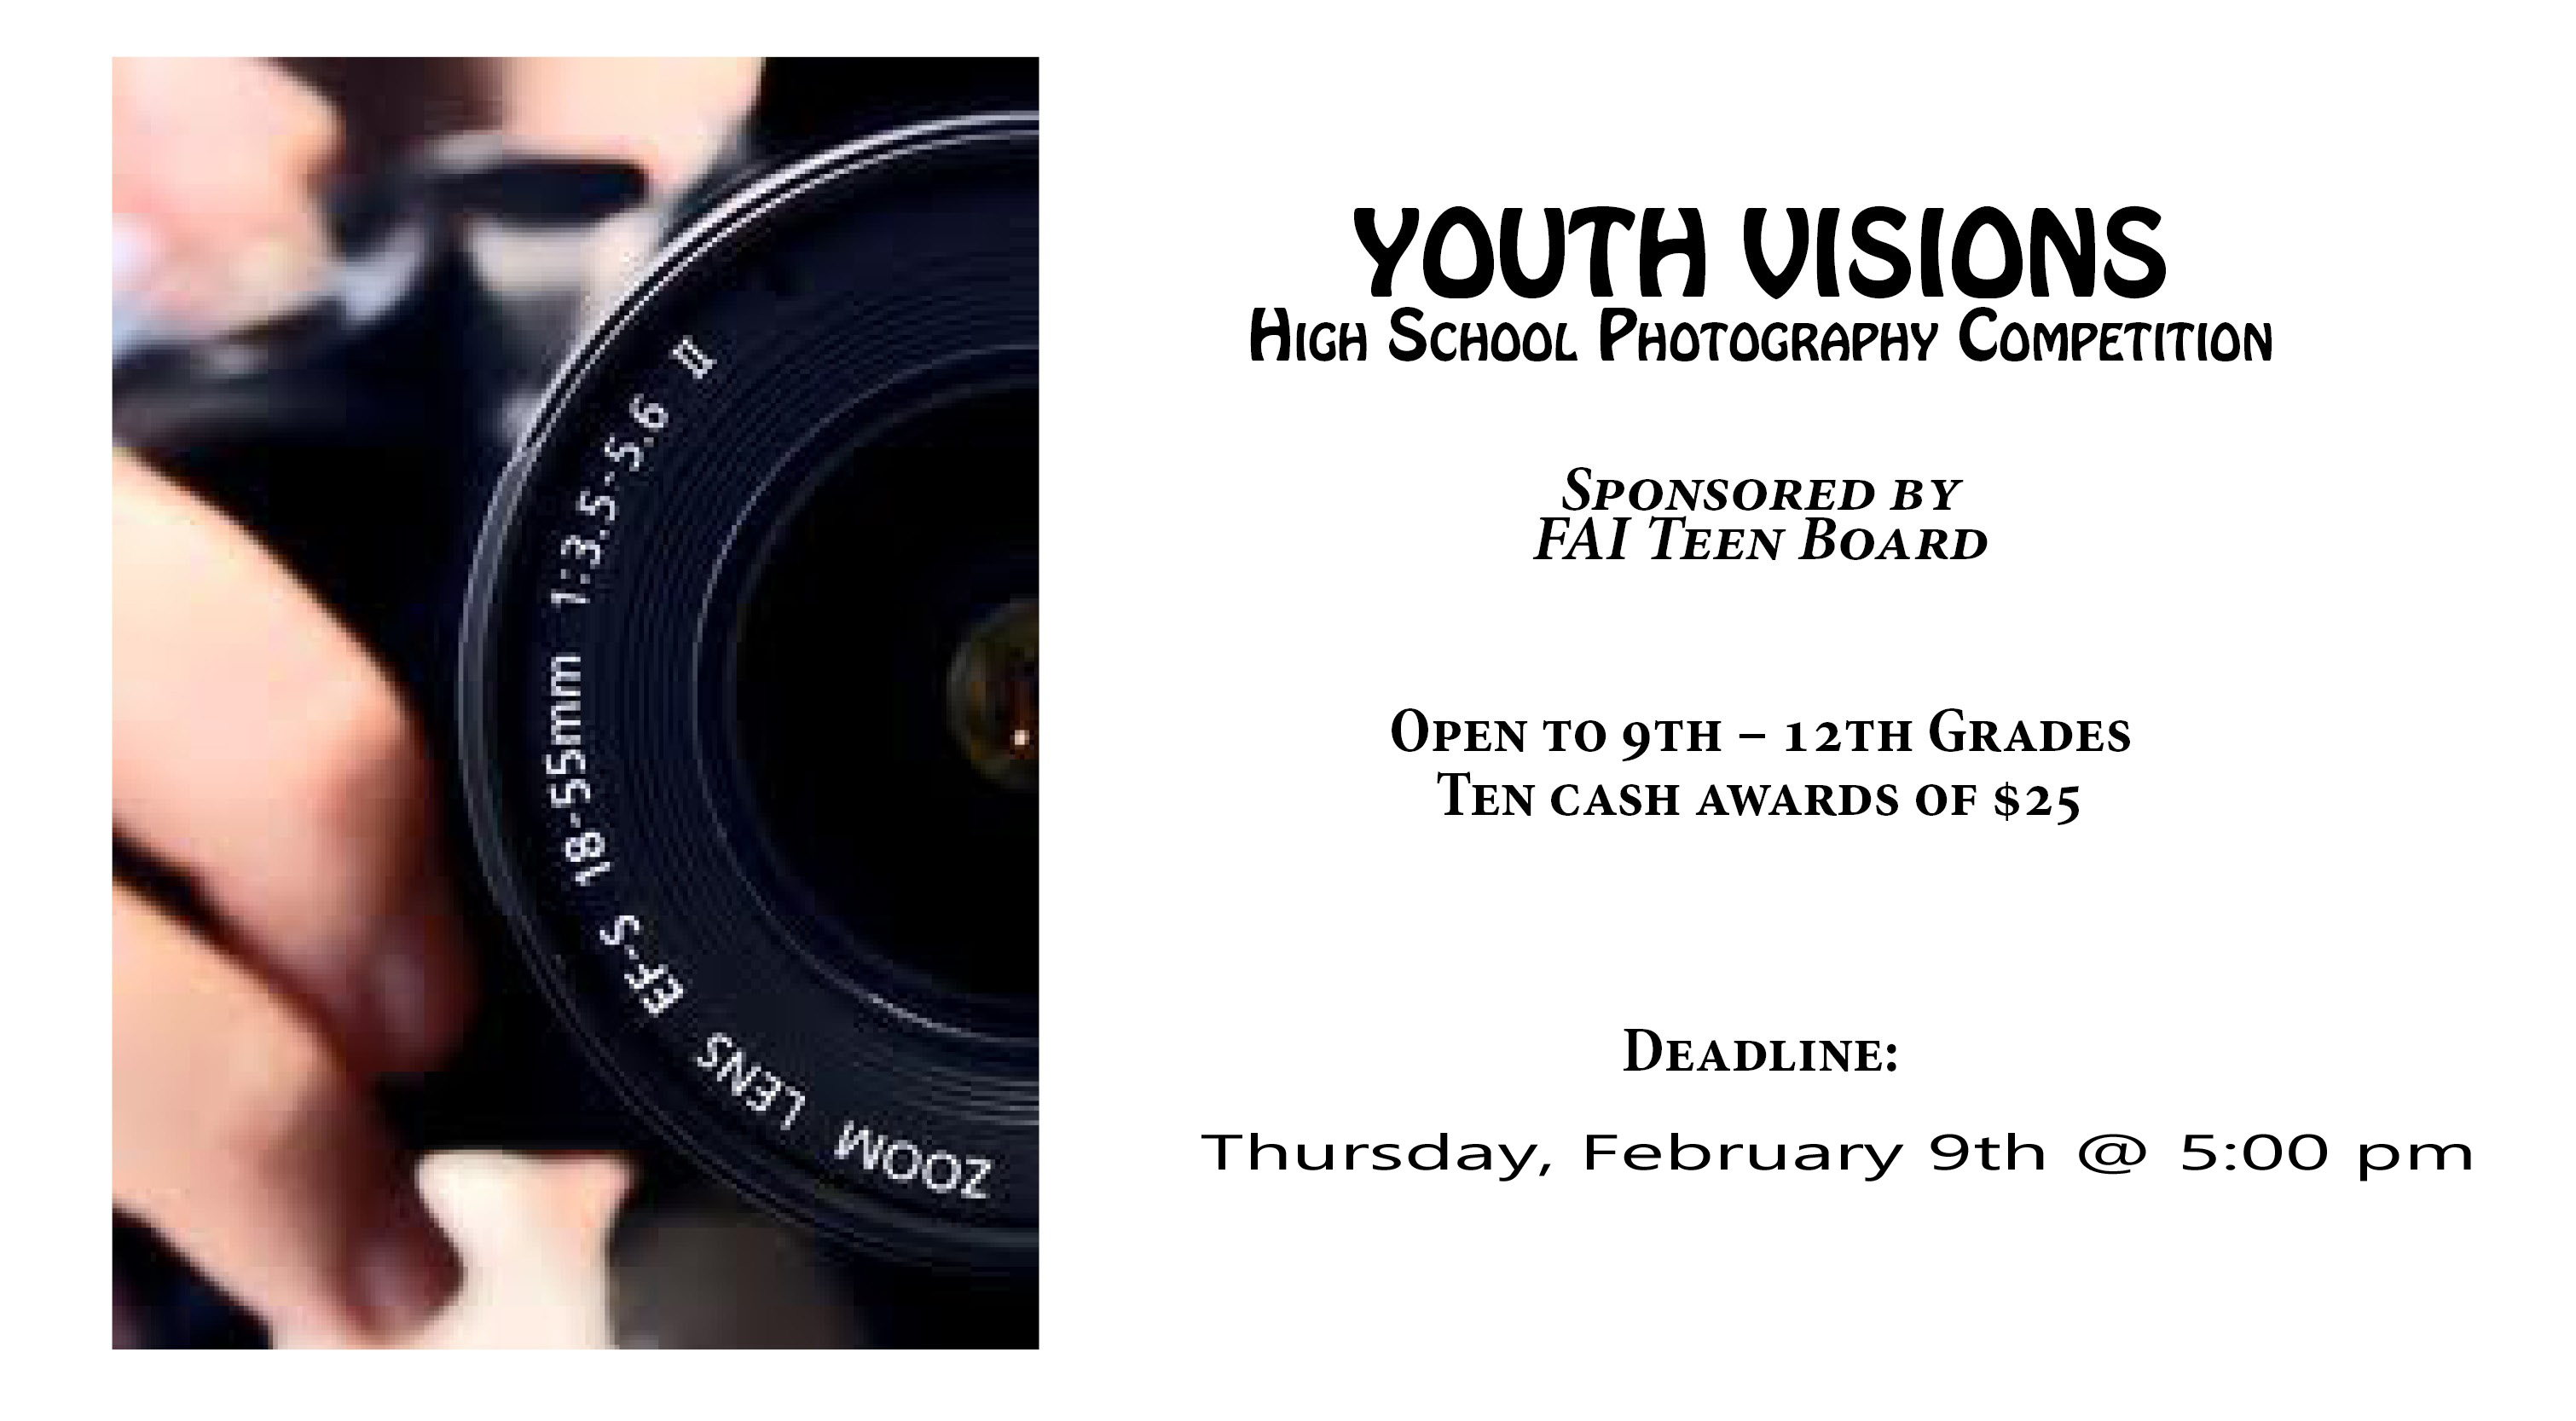 Youth Visions Photography Contest